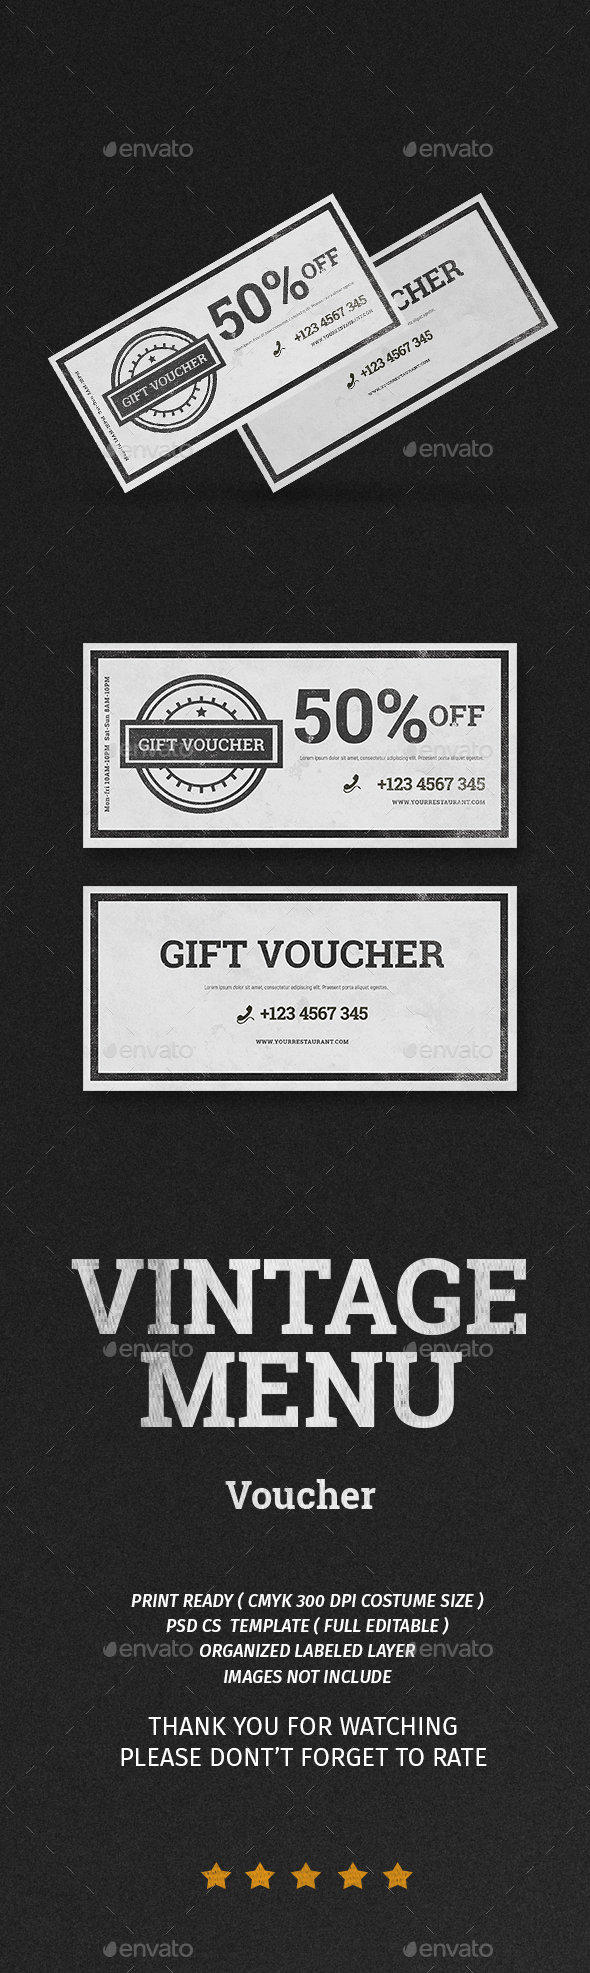 Vintage Voucher - Restaurant Flyers